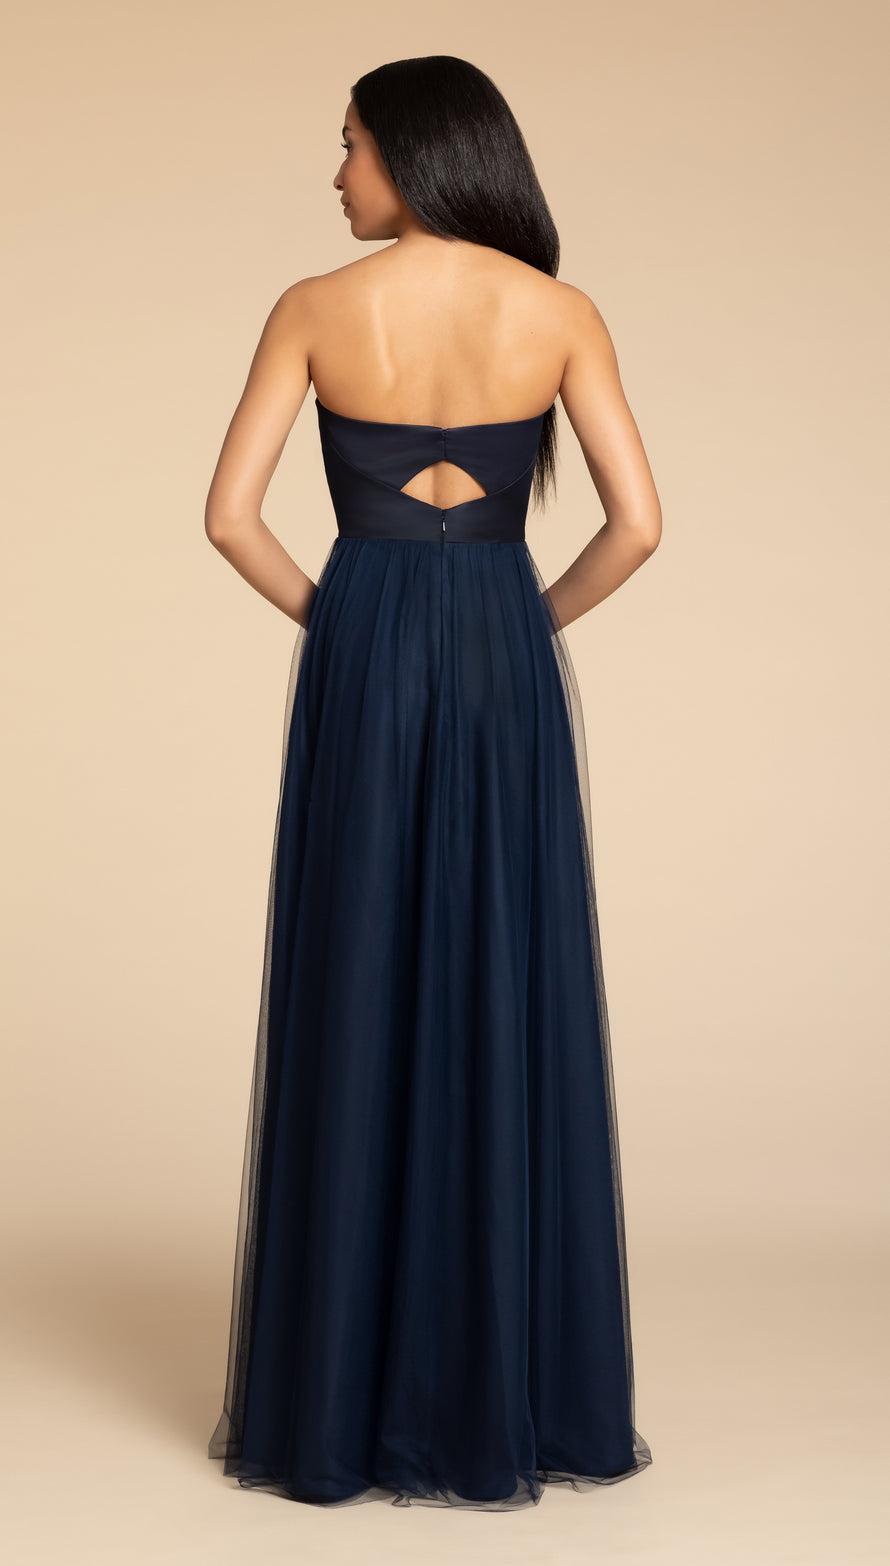 Hayley Paige Occasions Long Bridesmaid Dress - 5916 back